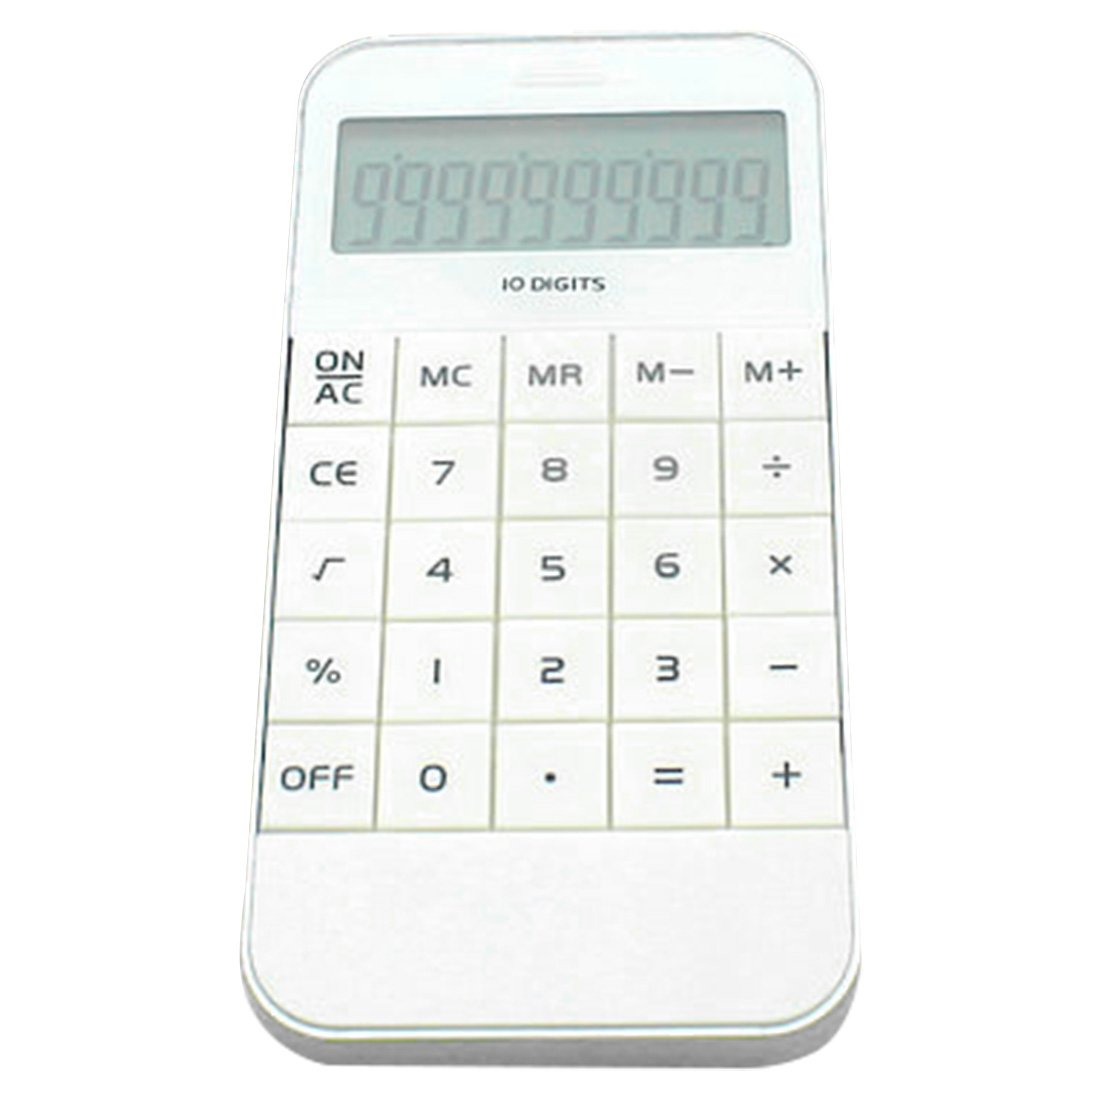 Etmakit Office Home Calculator Office worker School Calculator Portable Pocket Electronic Calculating Calculator etmakit office home calculator office worker school calculator portable pocket electronic calculating calculator newest